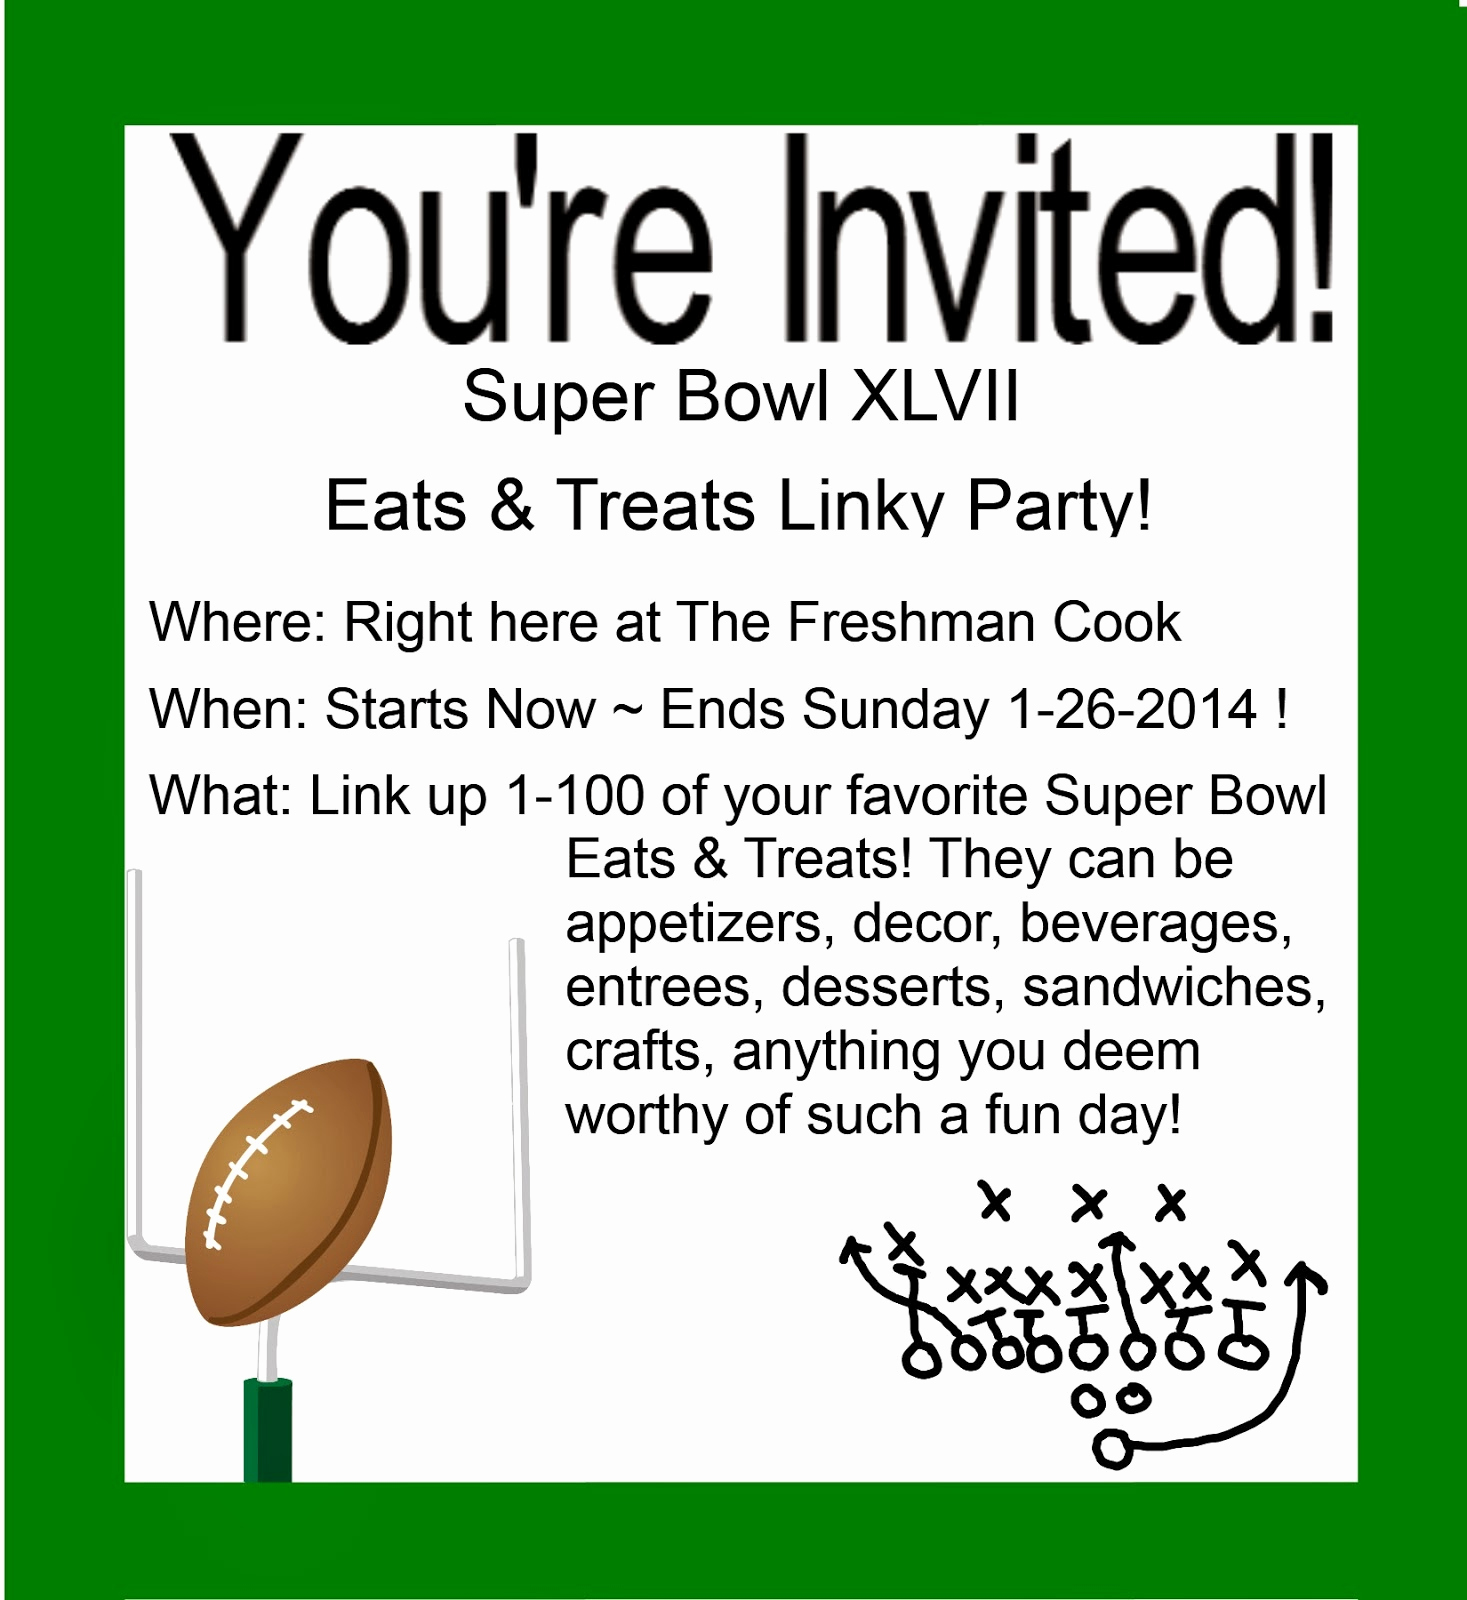 Super Bowl Invitation Ideas Fresh the Freshman Cook Super Bowl Linky Party